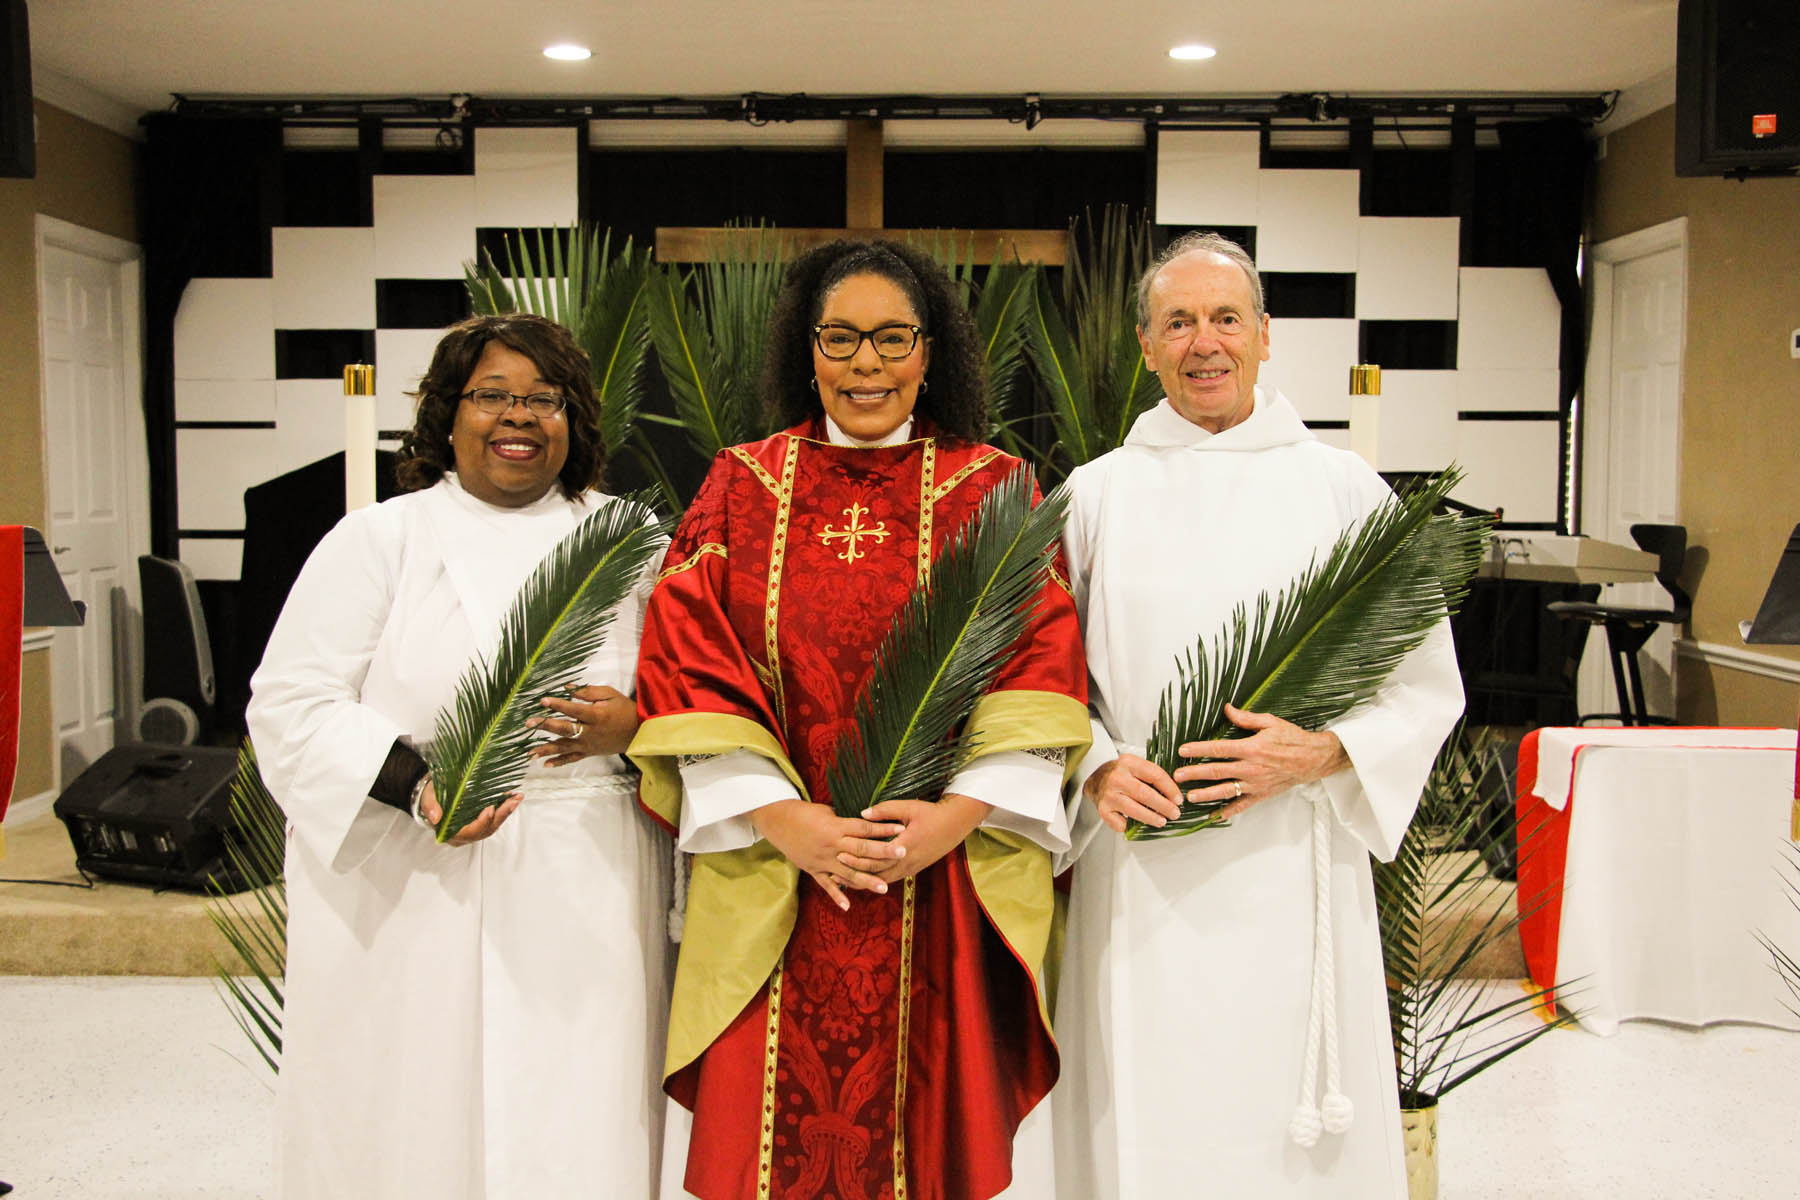 2019-04-14-WCEC-Palm-Sunday-106